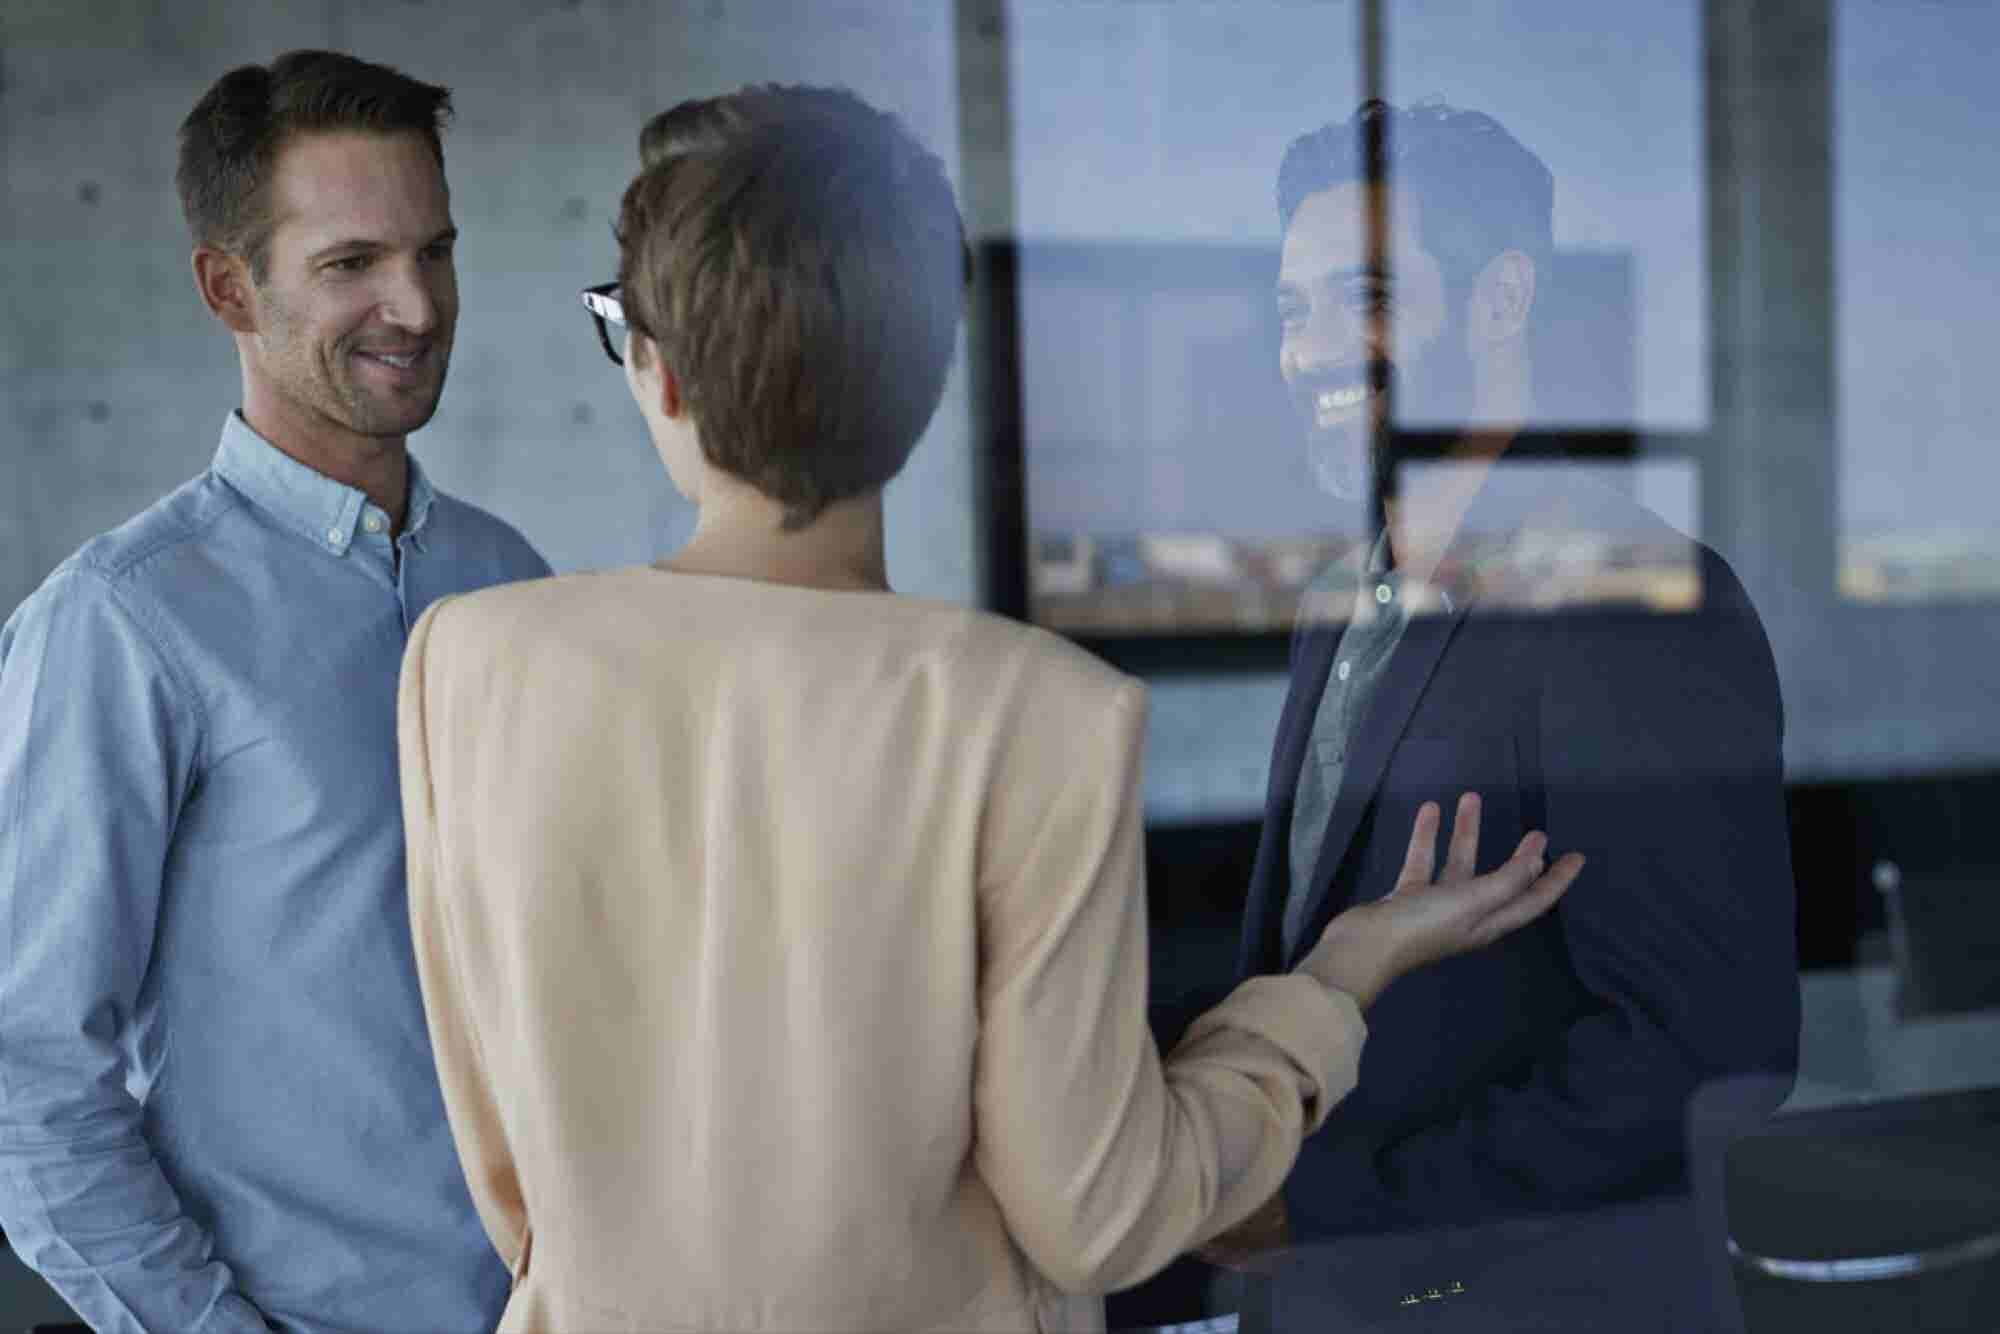 5 Simple Ways to Handle Nepotism in the Workplace